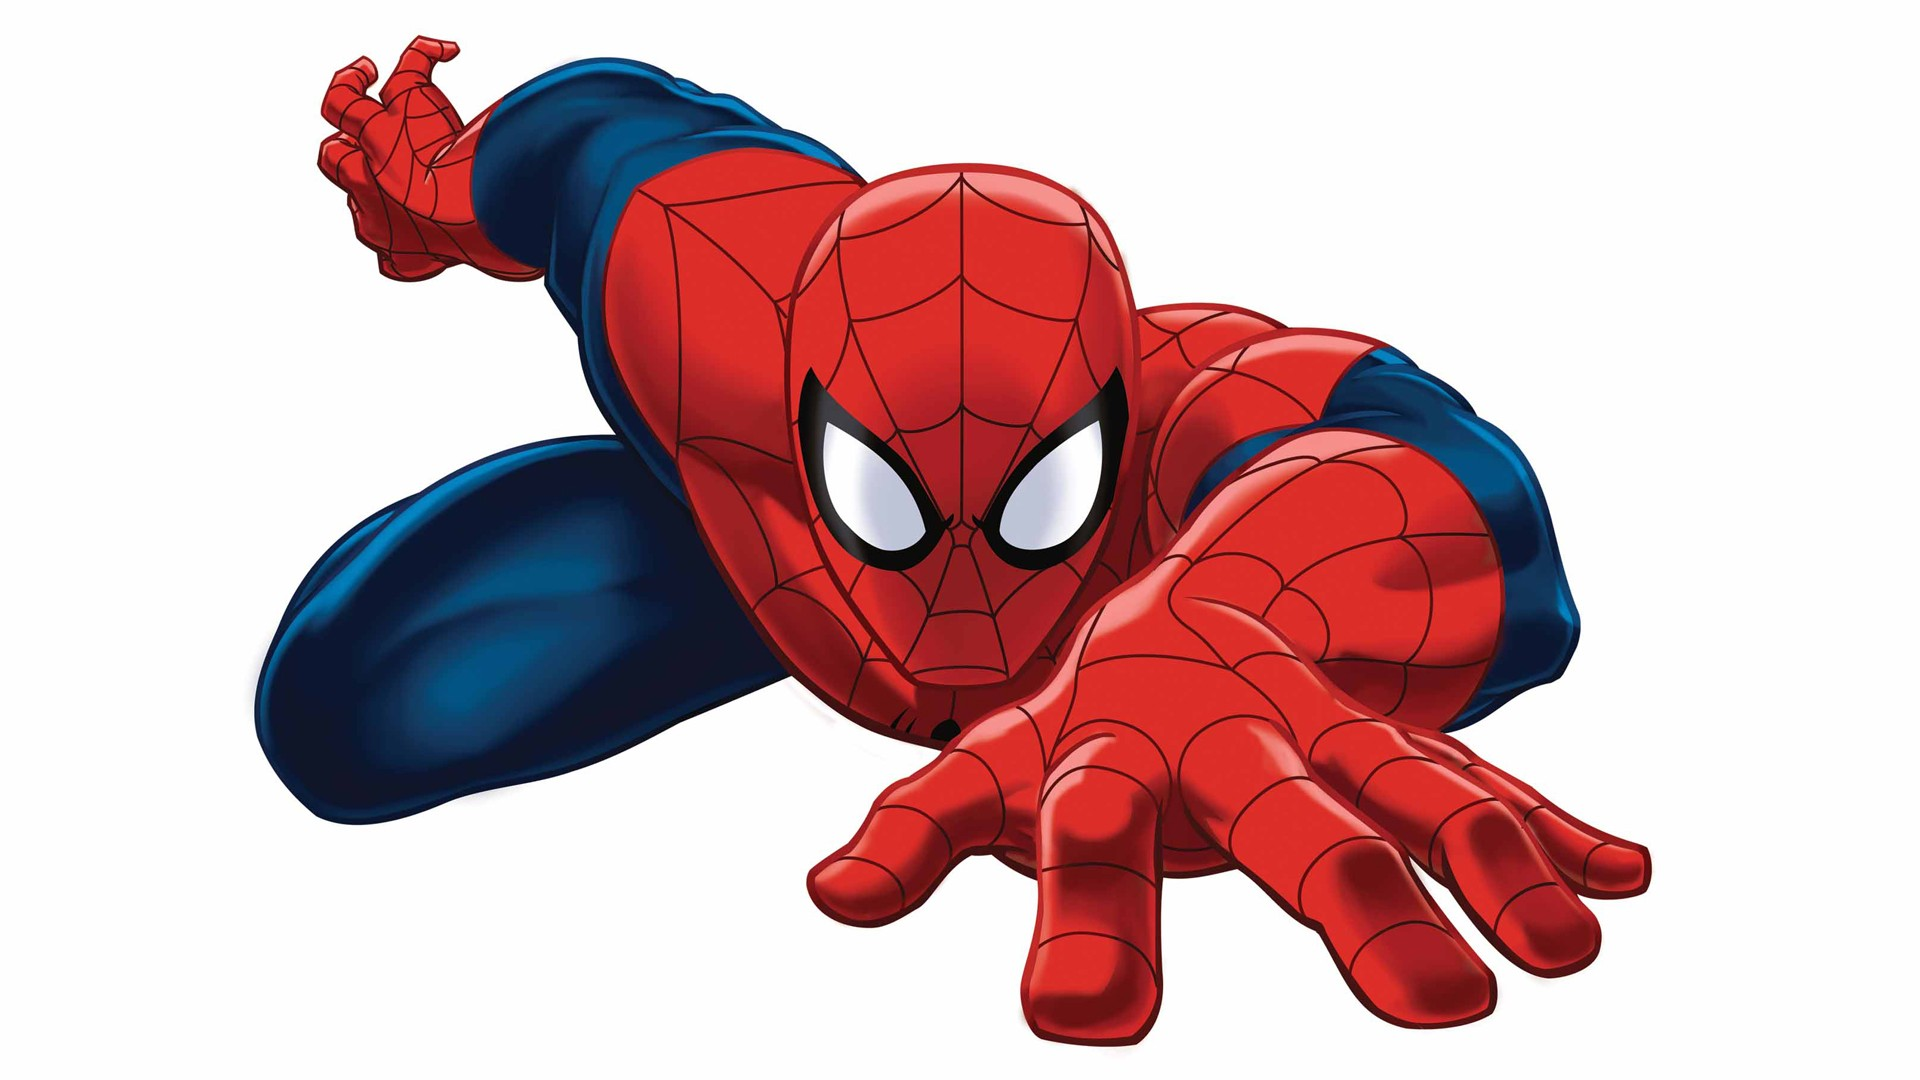 Spider man full hd wallpaper and background image - Free spiderman cartoons ...